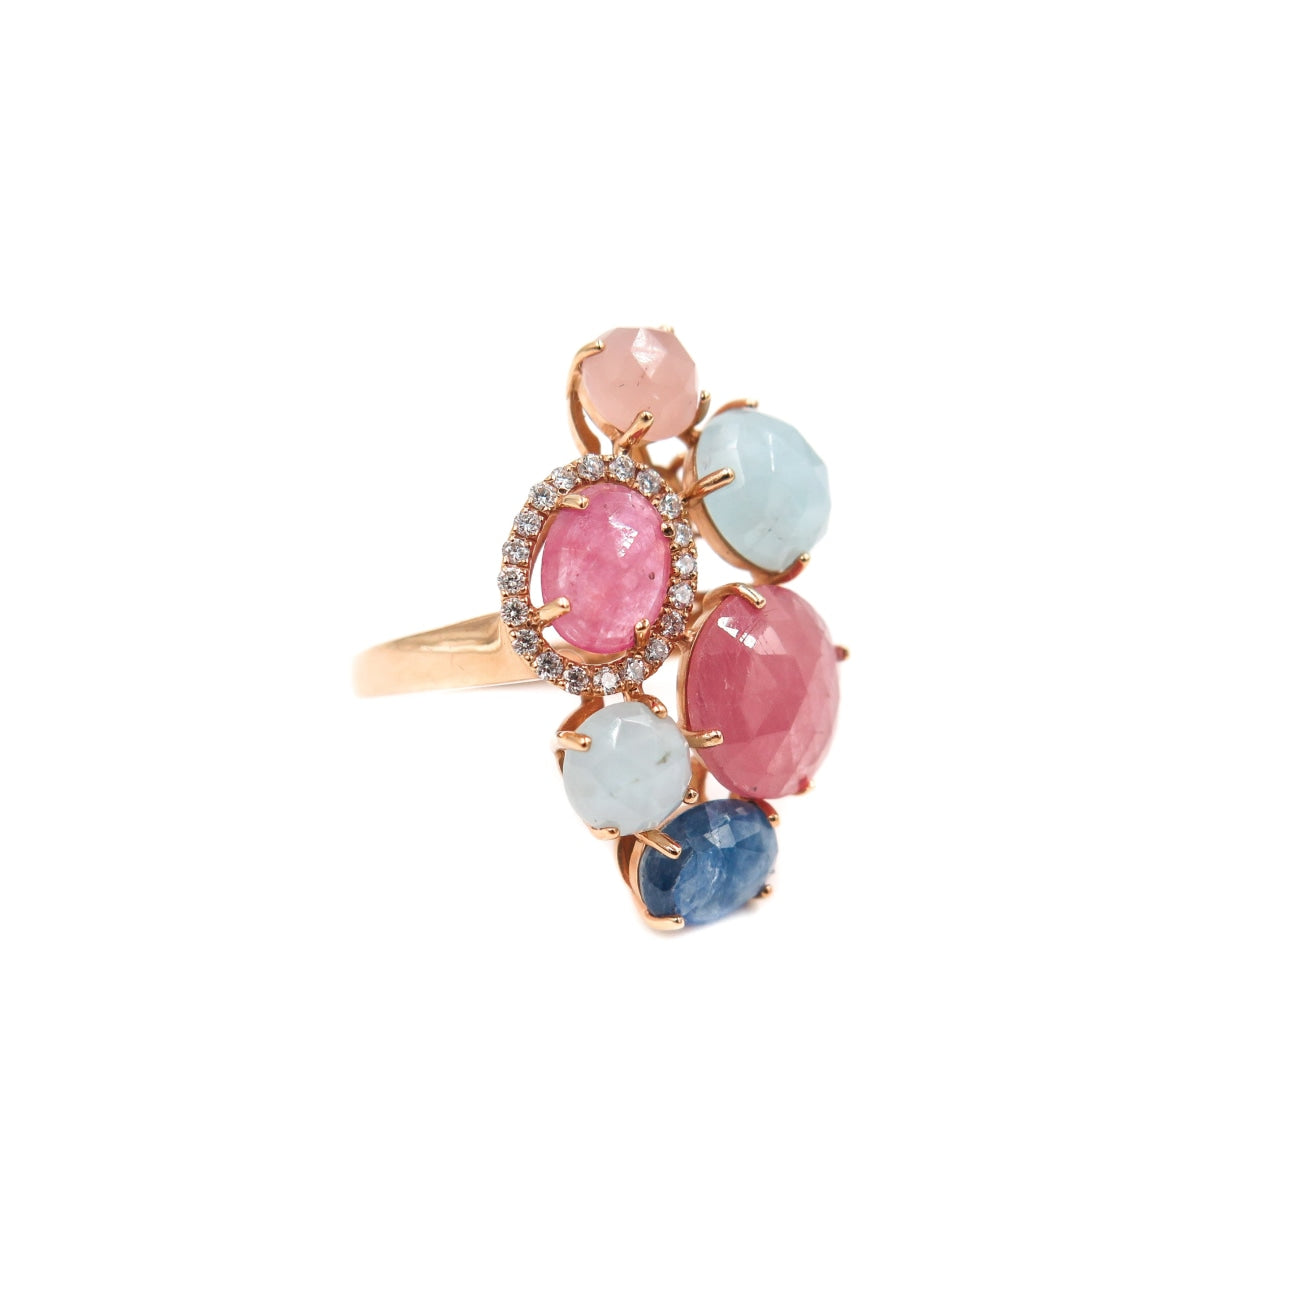 Manfredi Jewels Jewelry - 18k Rose Gold Multi-color Ring | Manfredi Jewels